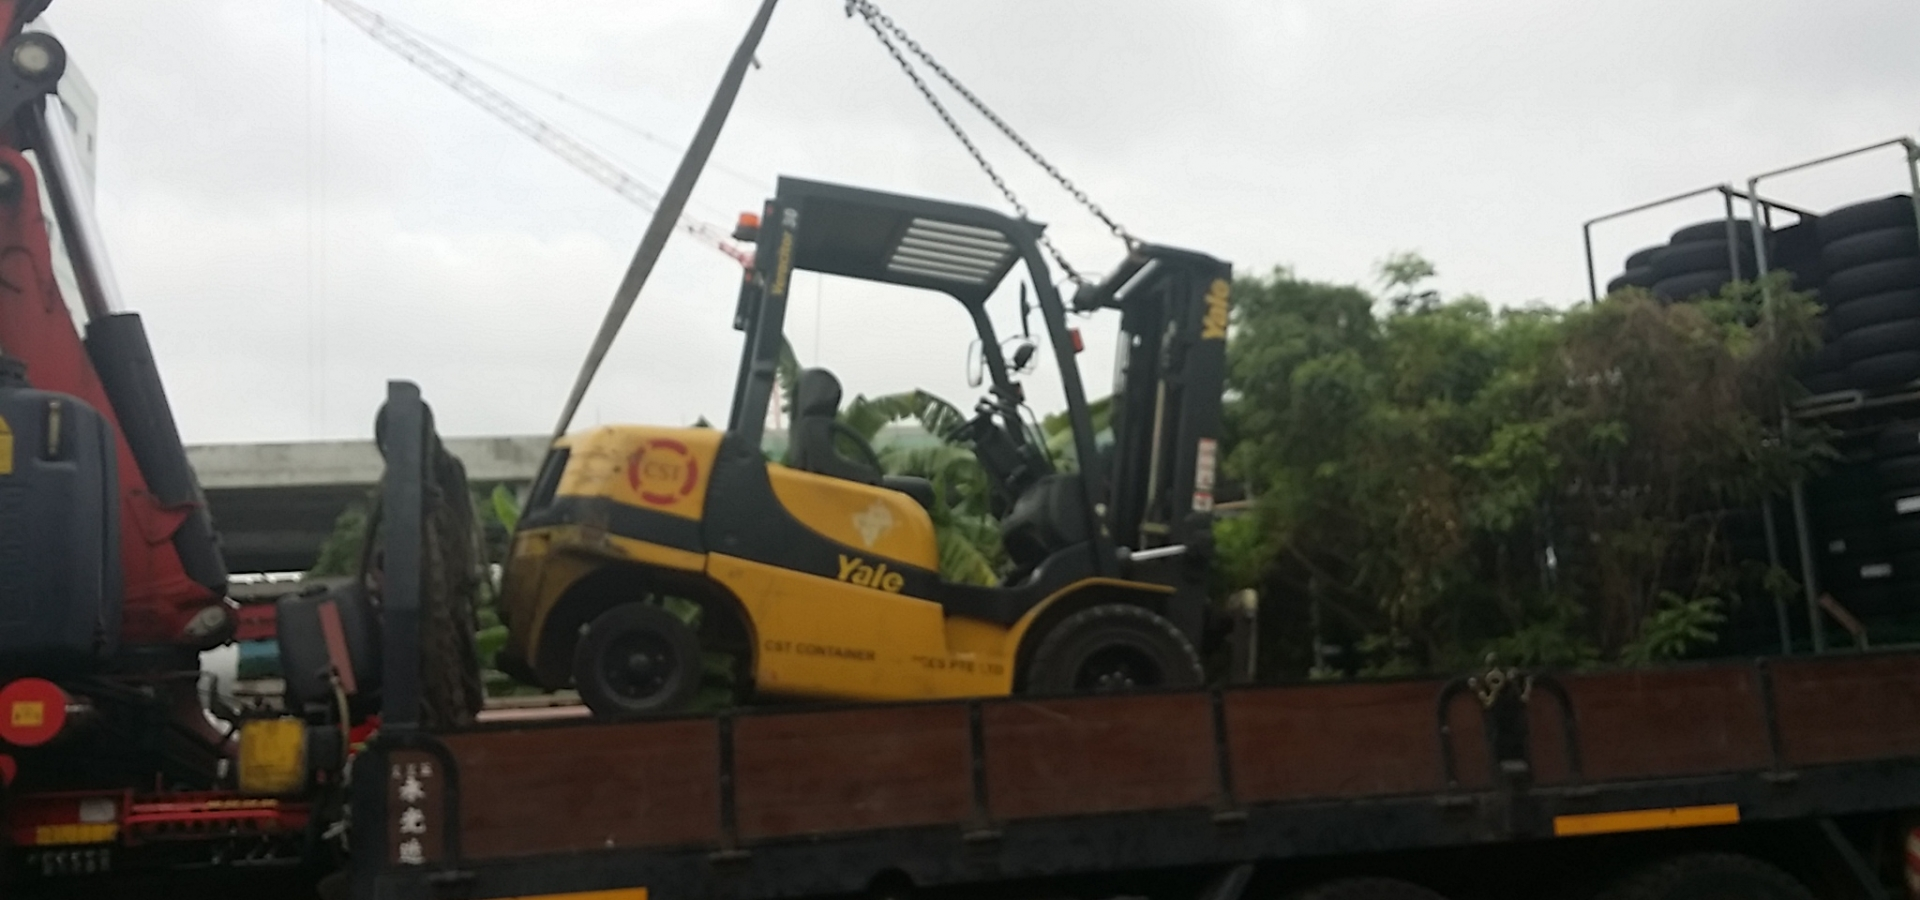 Lorry Crane Lifting Forklift Logistics Transportation